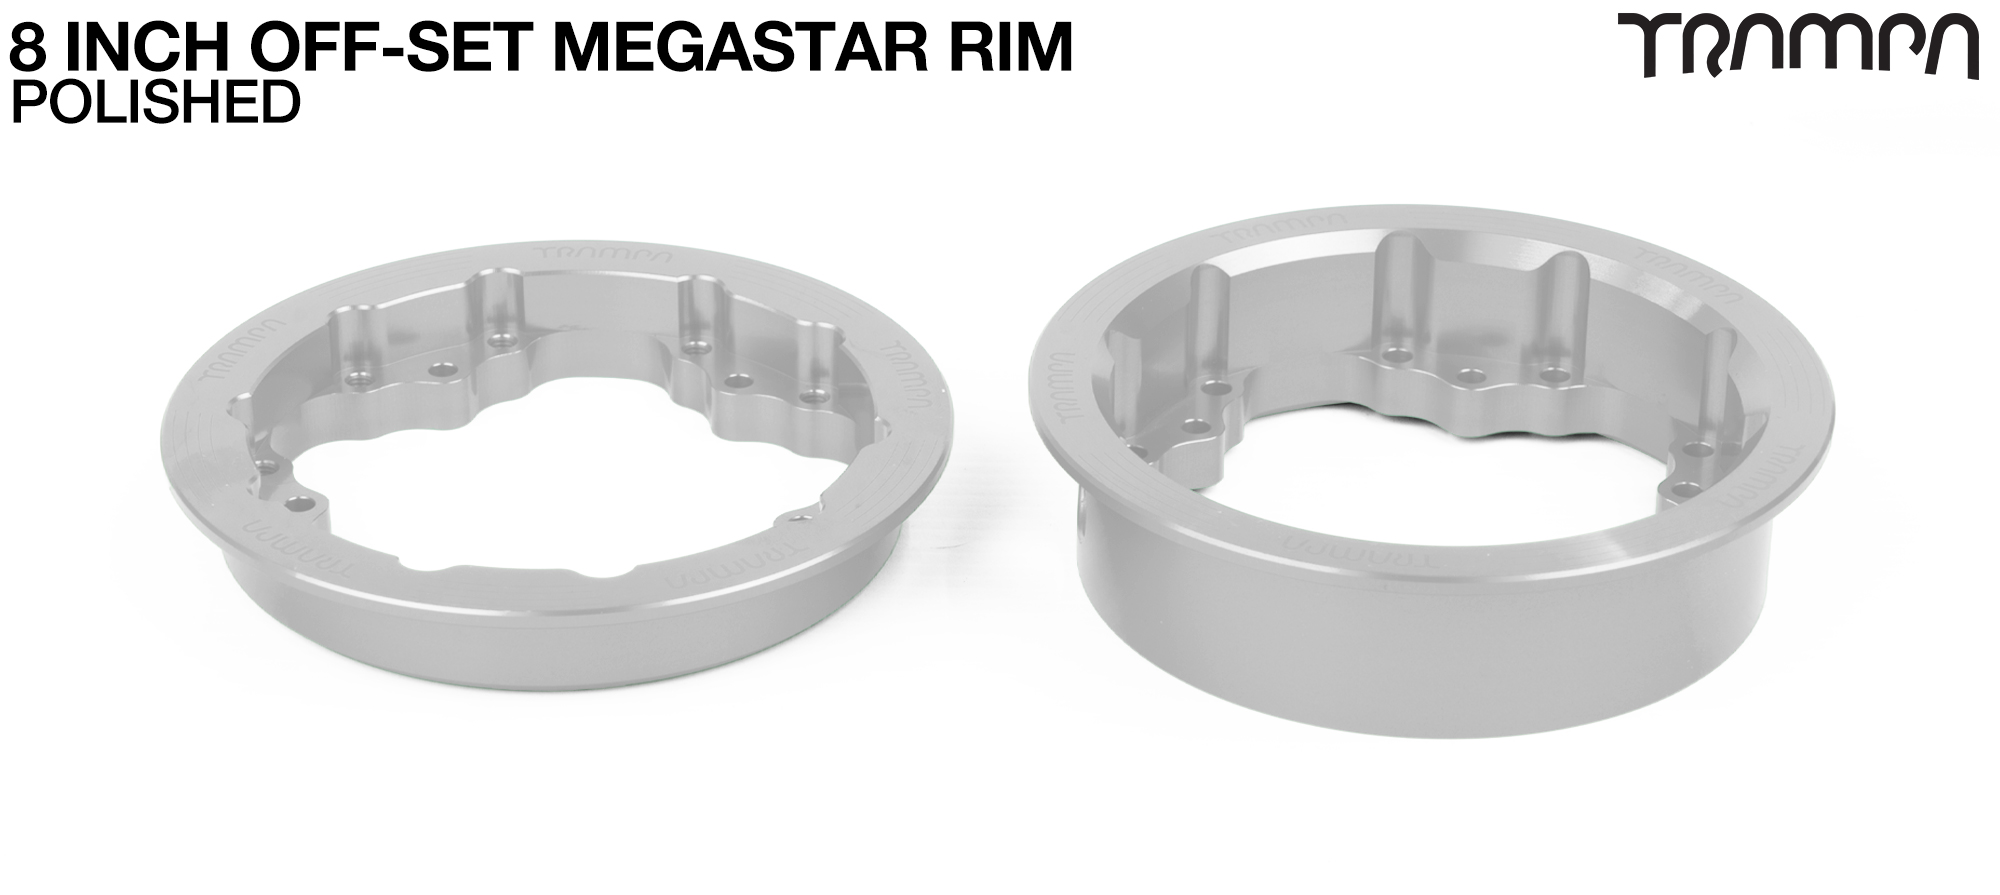 CENTER-SET 8 inch MEGASTAR Rims - SILVER